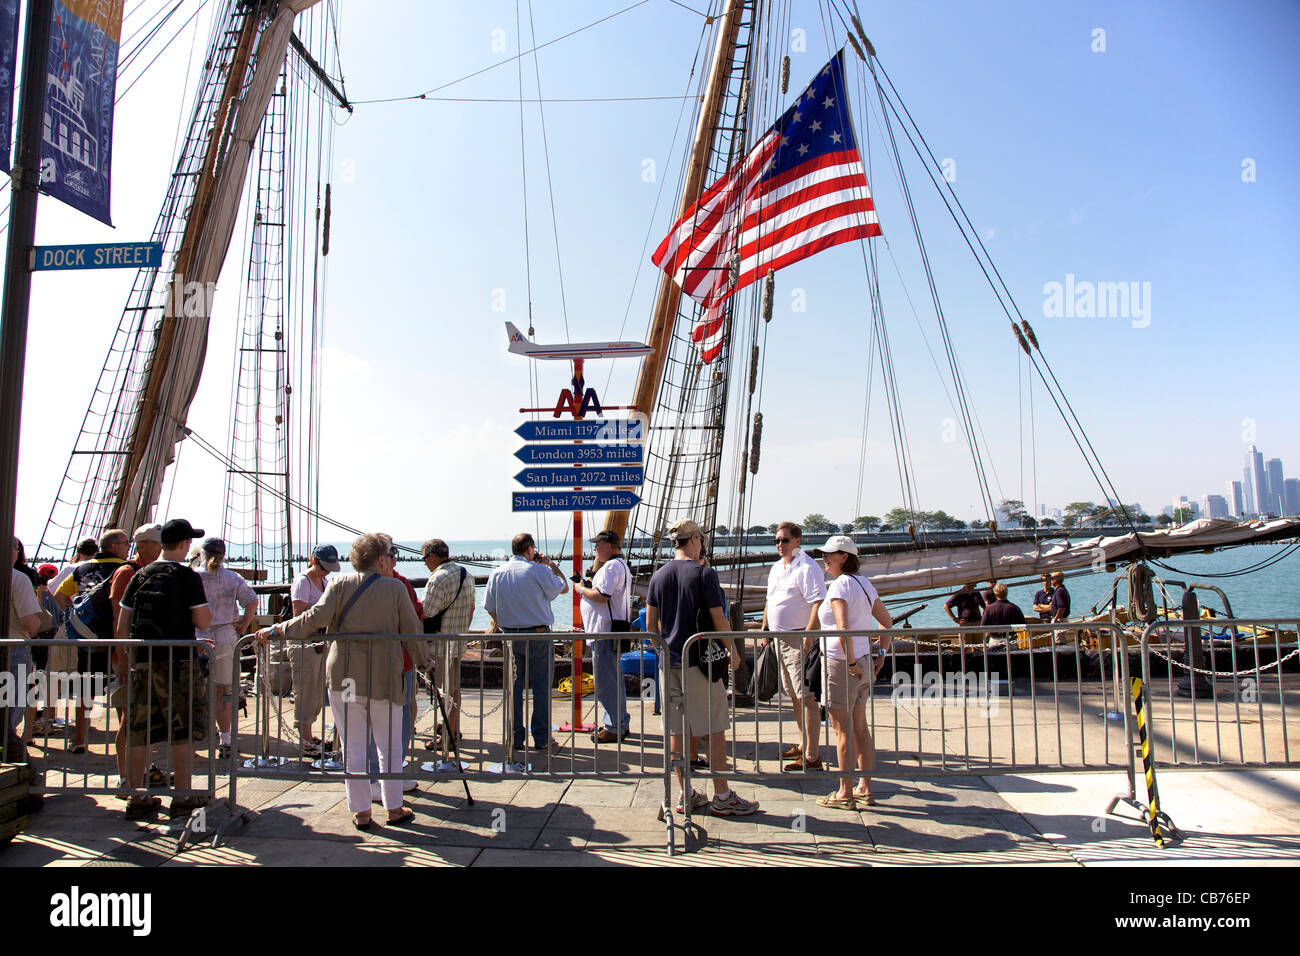 Tourists waiting to board tall ship Friends Good Will. Tall Ships 2011 Navy Pier, Chicago, Illinois - Stock Image